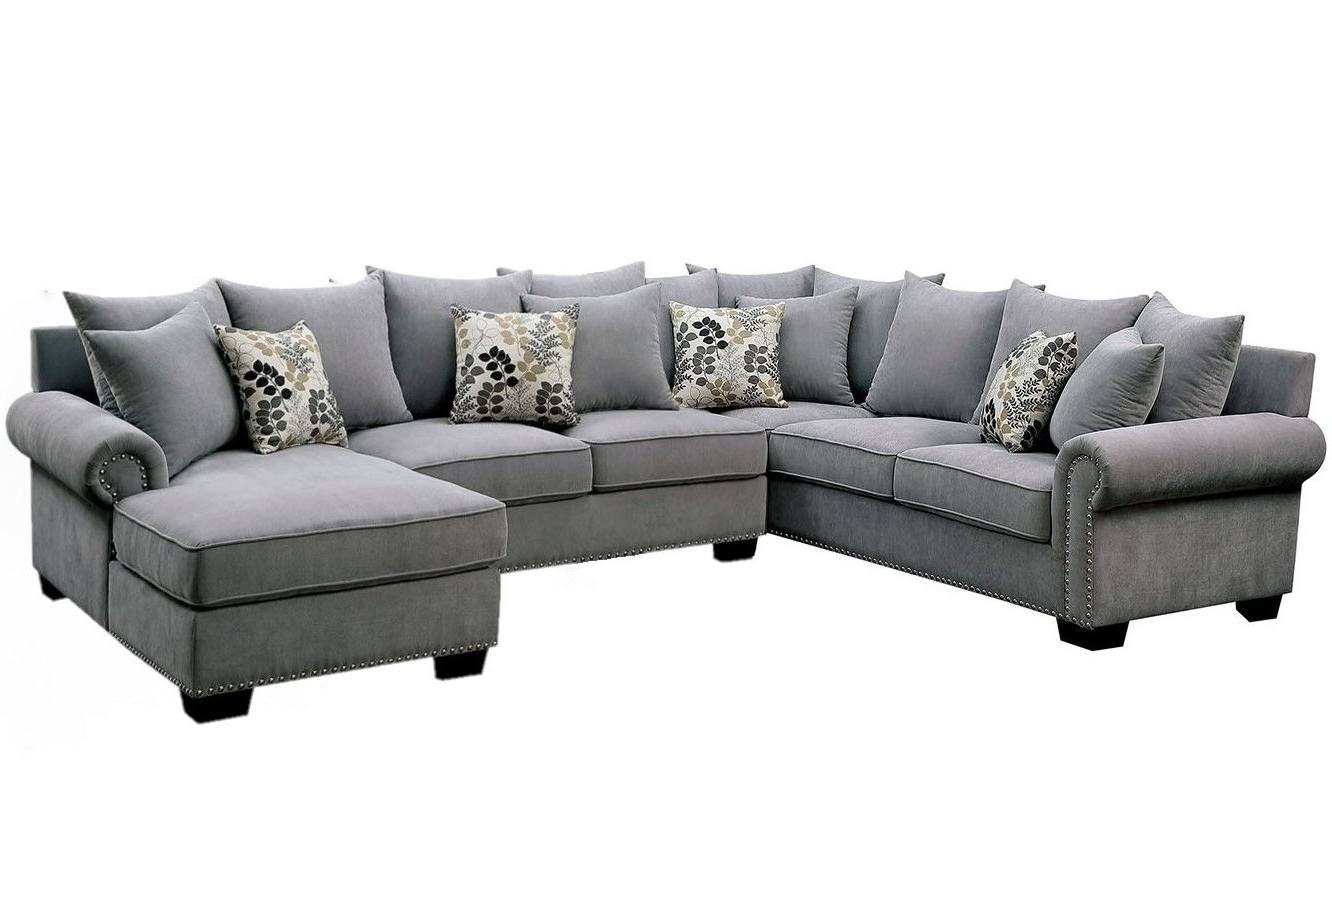 2018 2pc Polyfiber Sectional Sofas With Nailhead Trims Gray Intended For Skyler Ii Transitional Gray Fabric Upholstered Sectional (View 10 of 20)